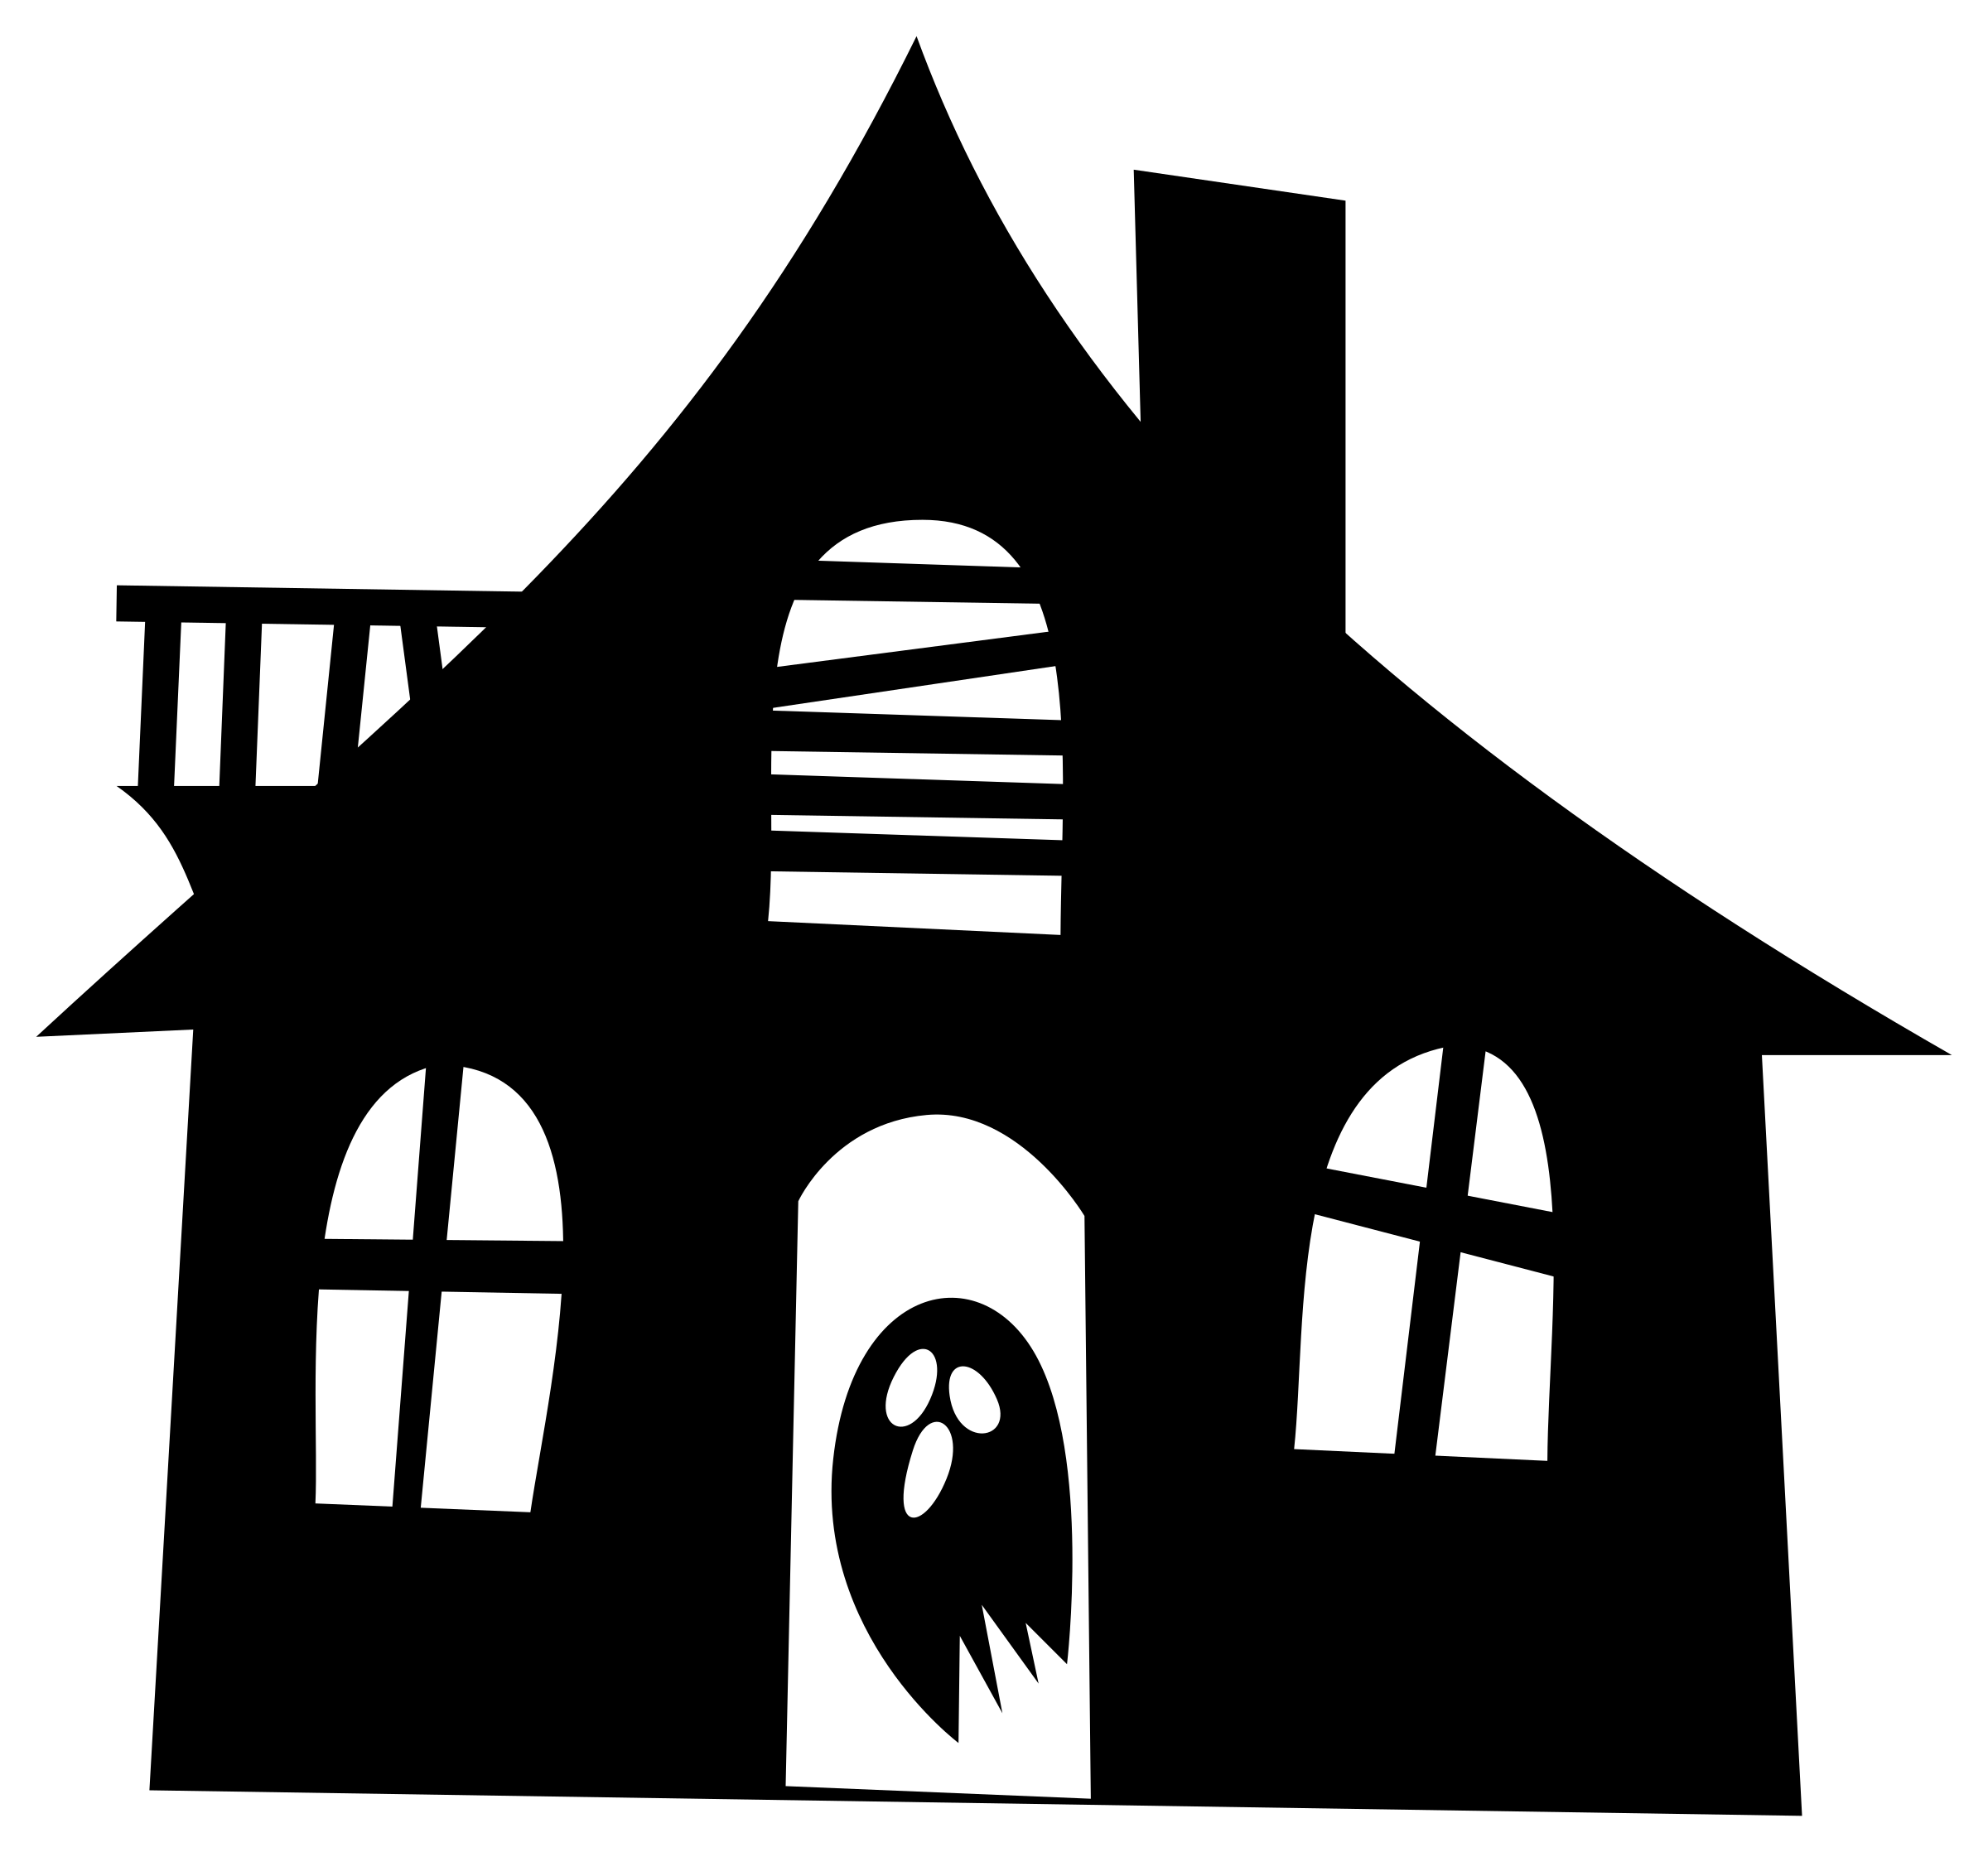 Haunted house Silhouette Drawing Clip art.